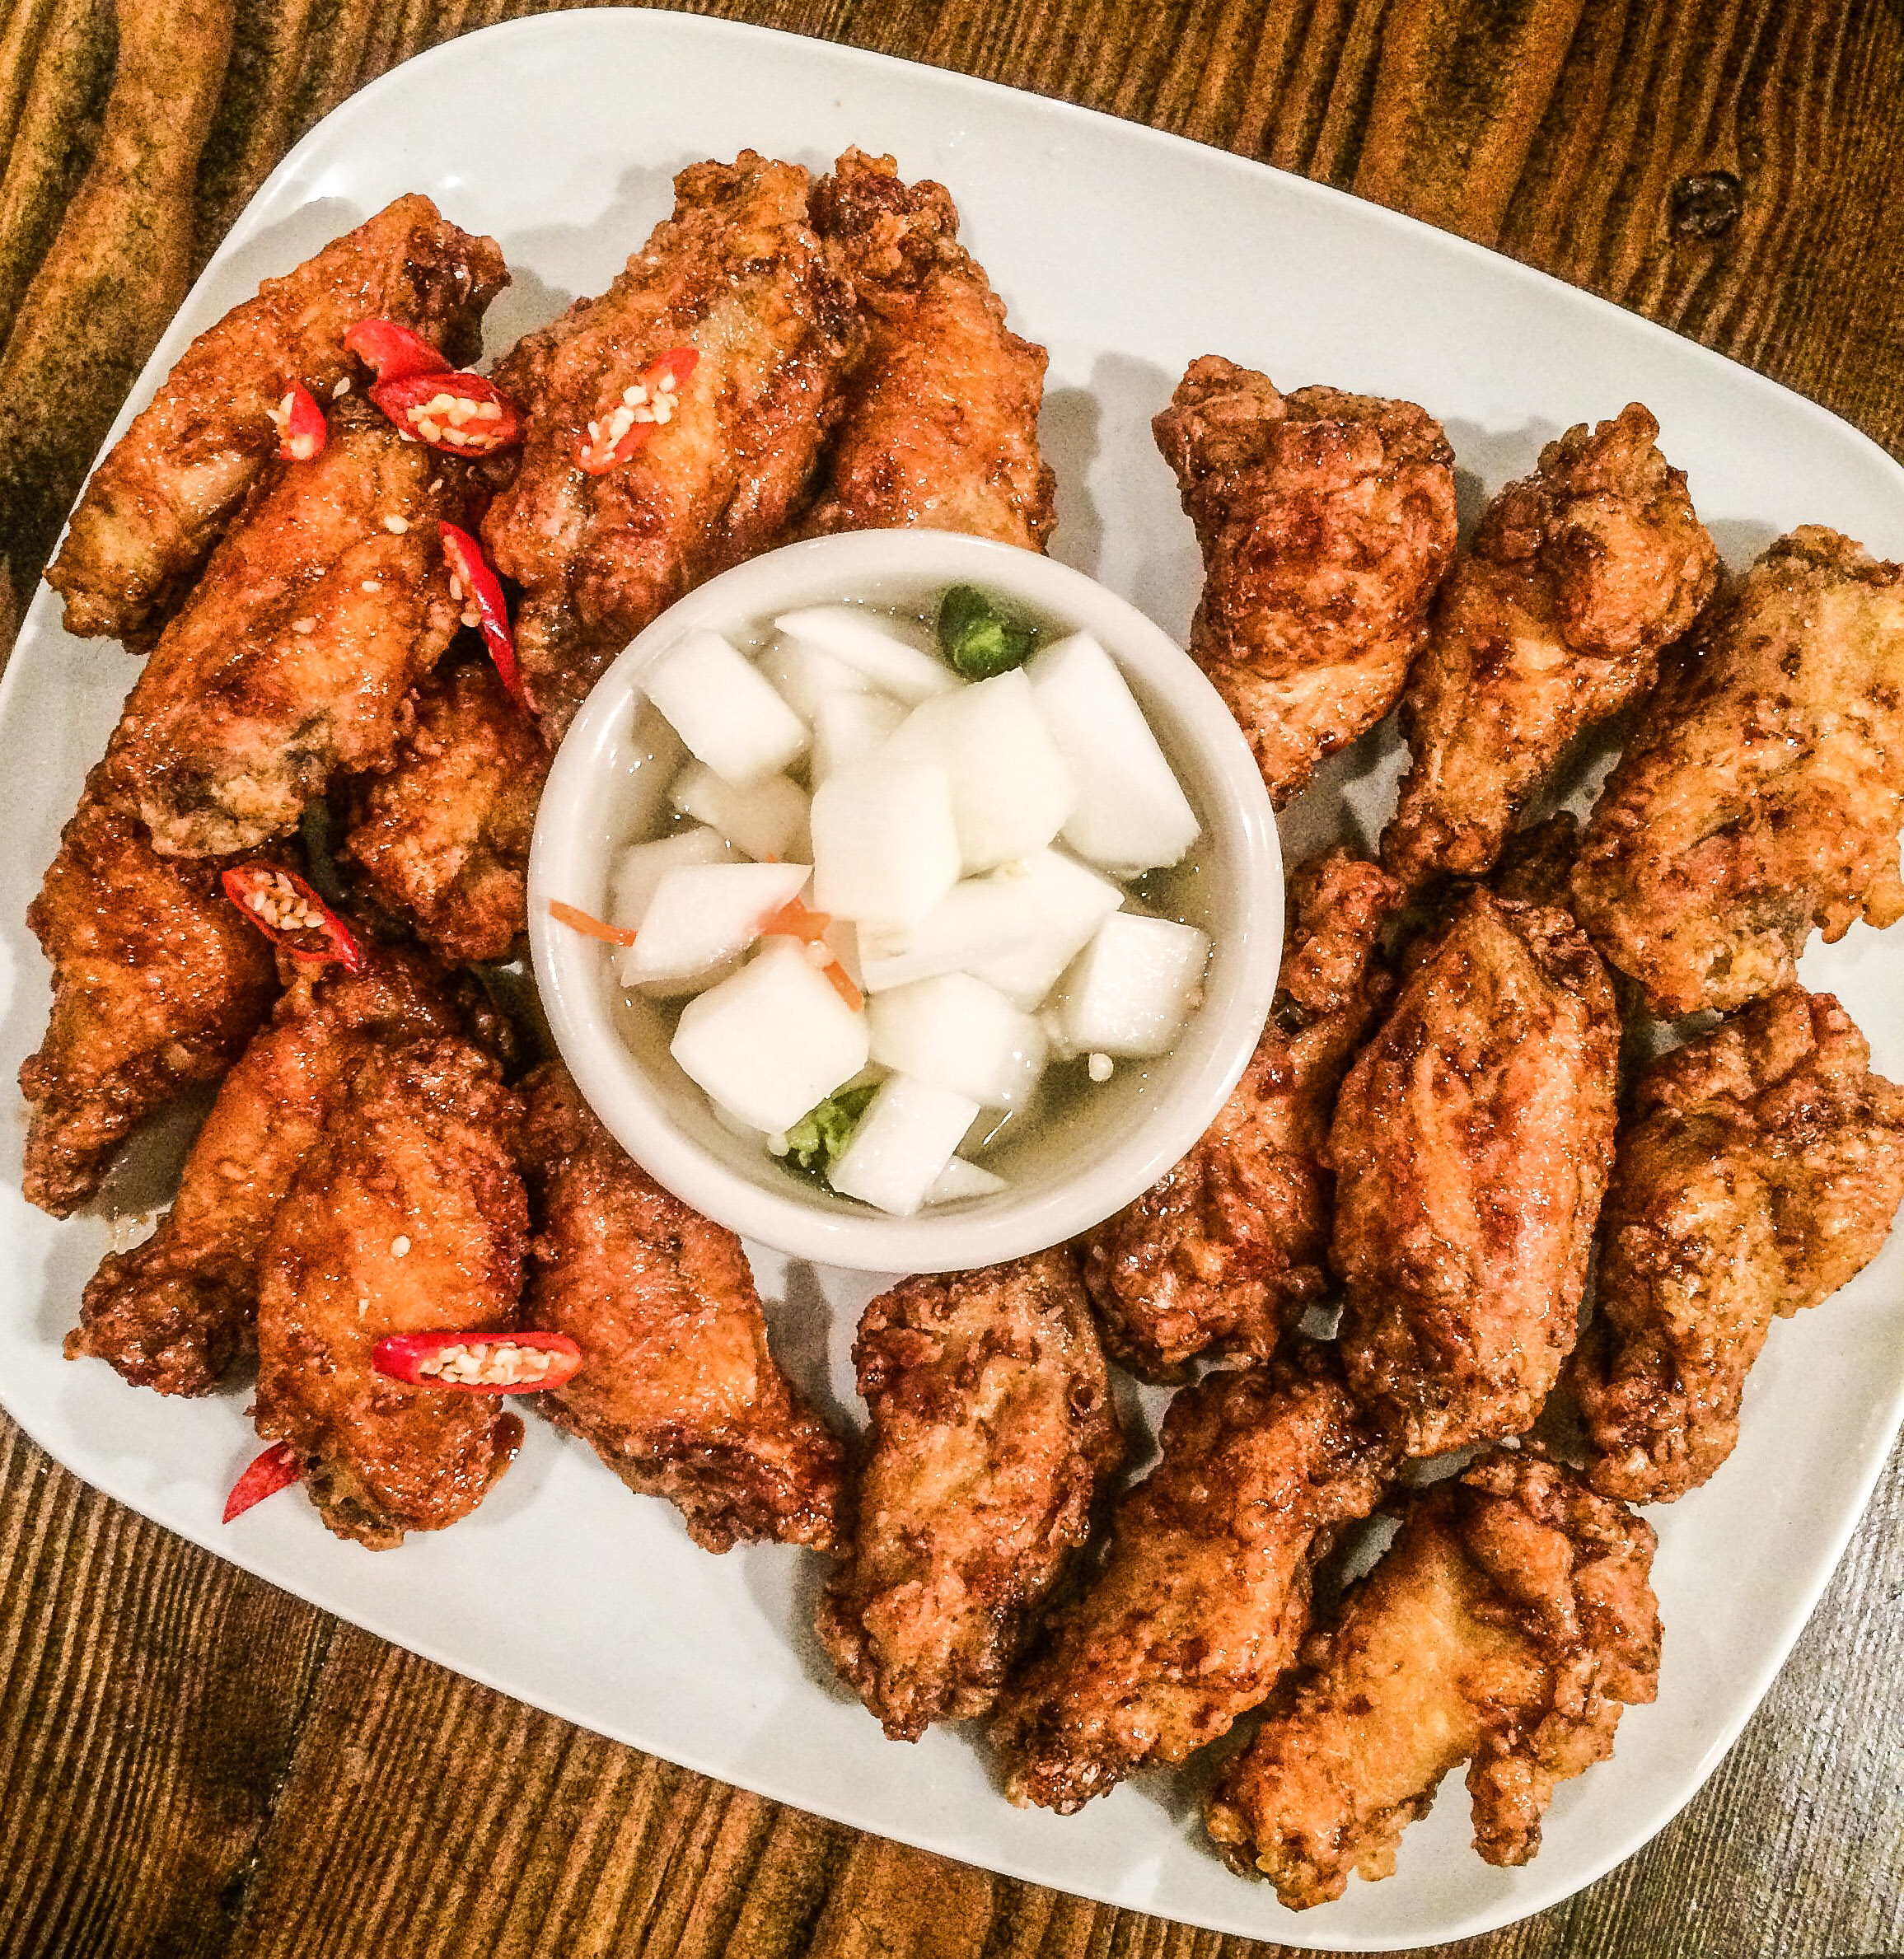 Korean Fried Chicken- Crispy chicken wings glazed with Spicy Korean Sauce or Soy Garlic Sauce.